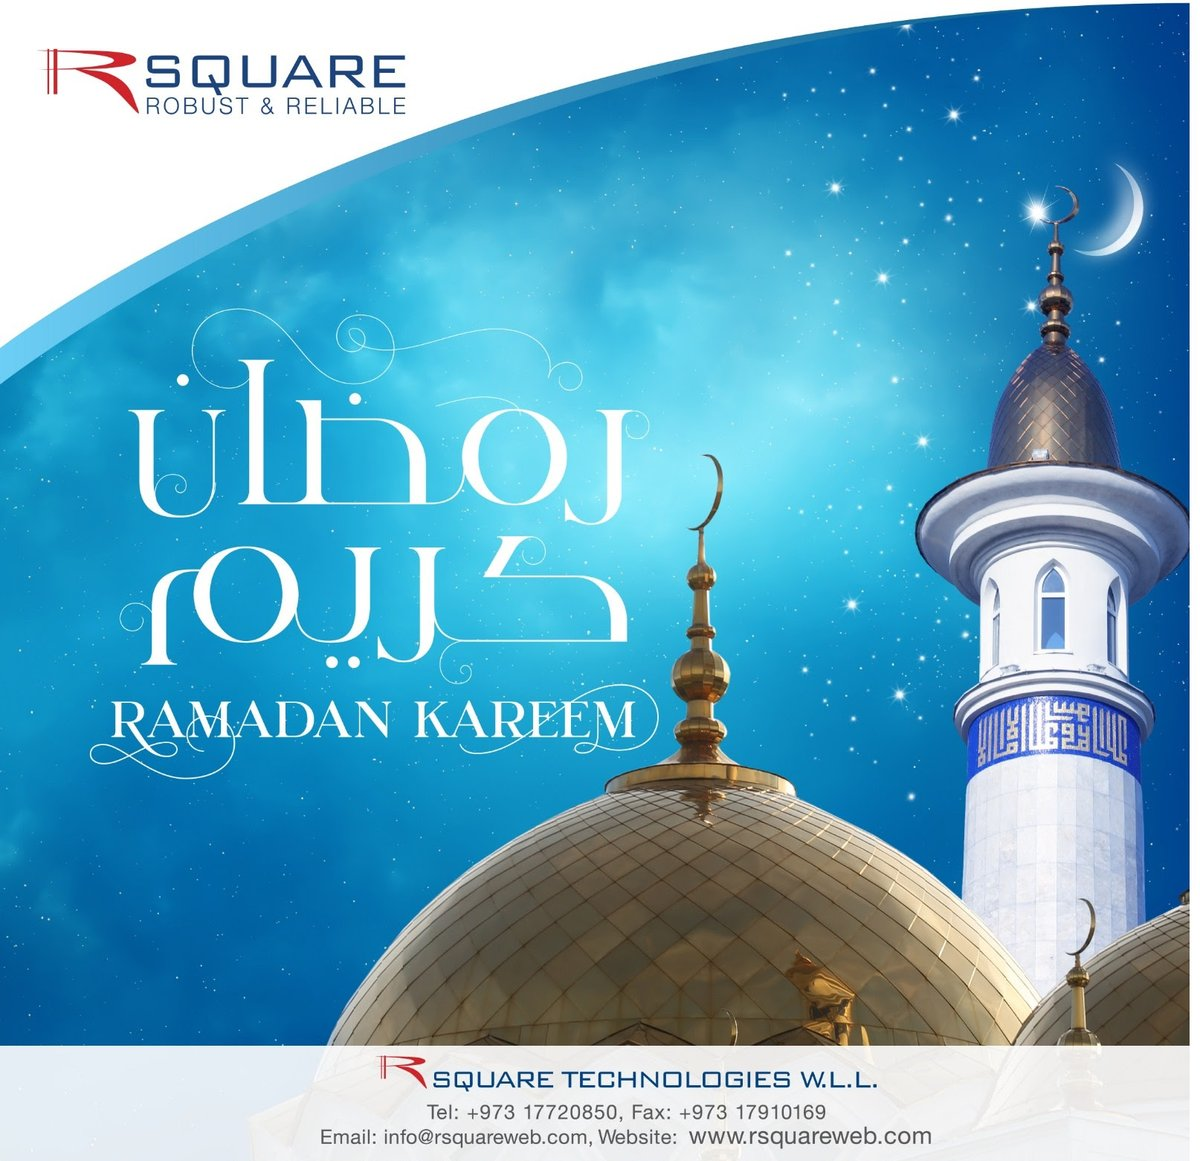 May this holy month of Ramadan bring good Health, Peace and Prosperity to you and your family. #teambahrain #bahrainfintechbay #mena #gcc #bahrain #rsquare #ramadan2020 https://t.co/Hn0VYg7jZX